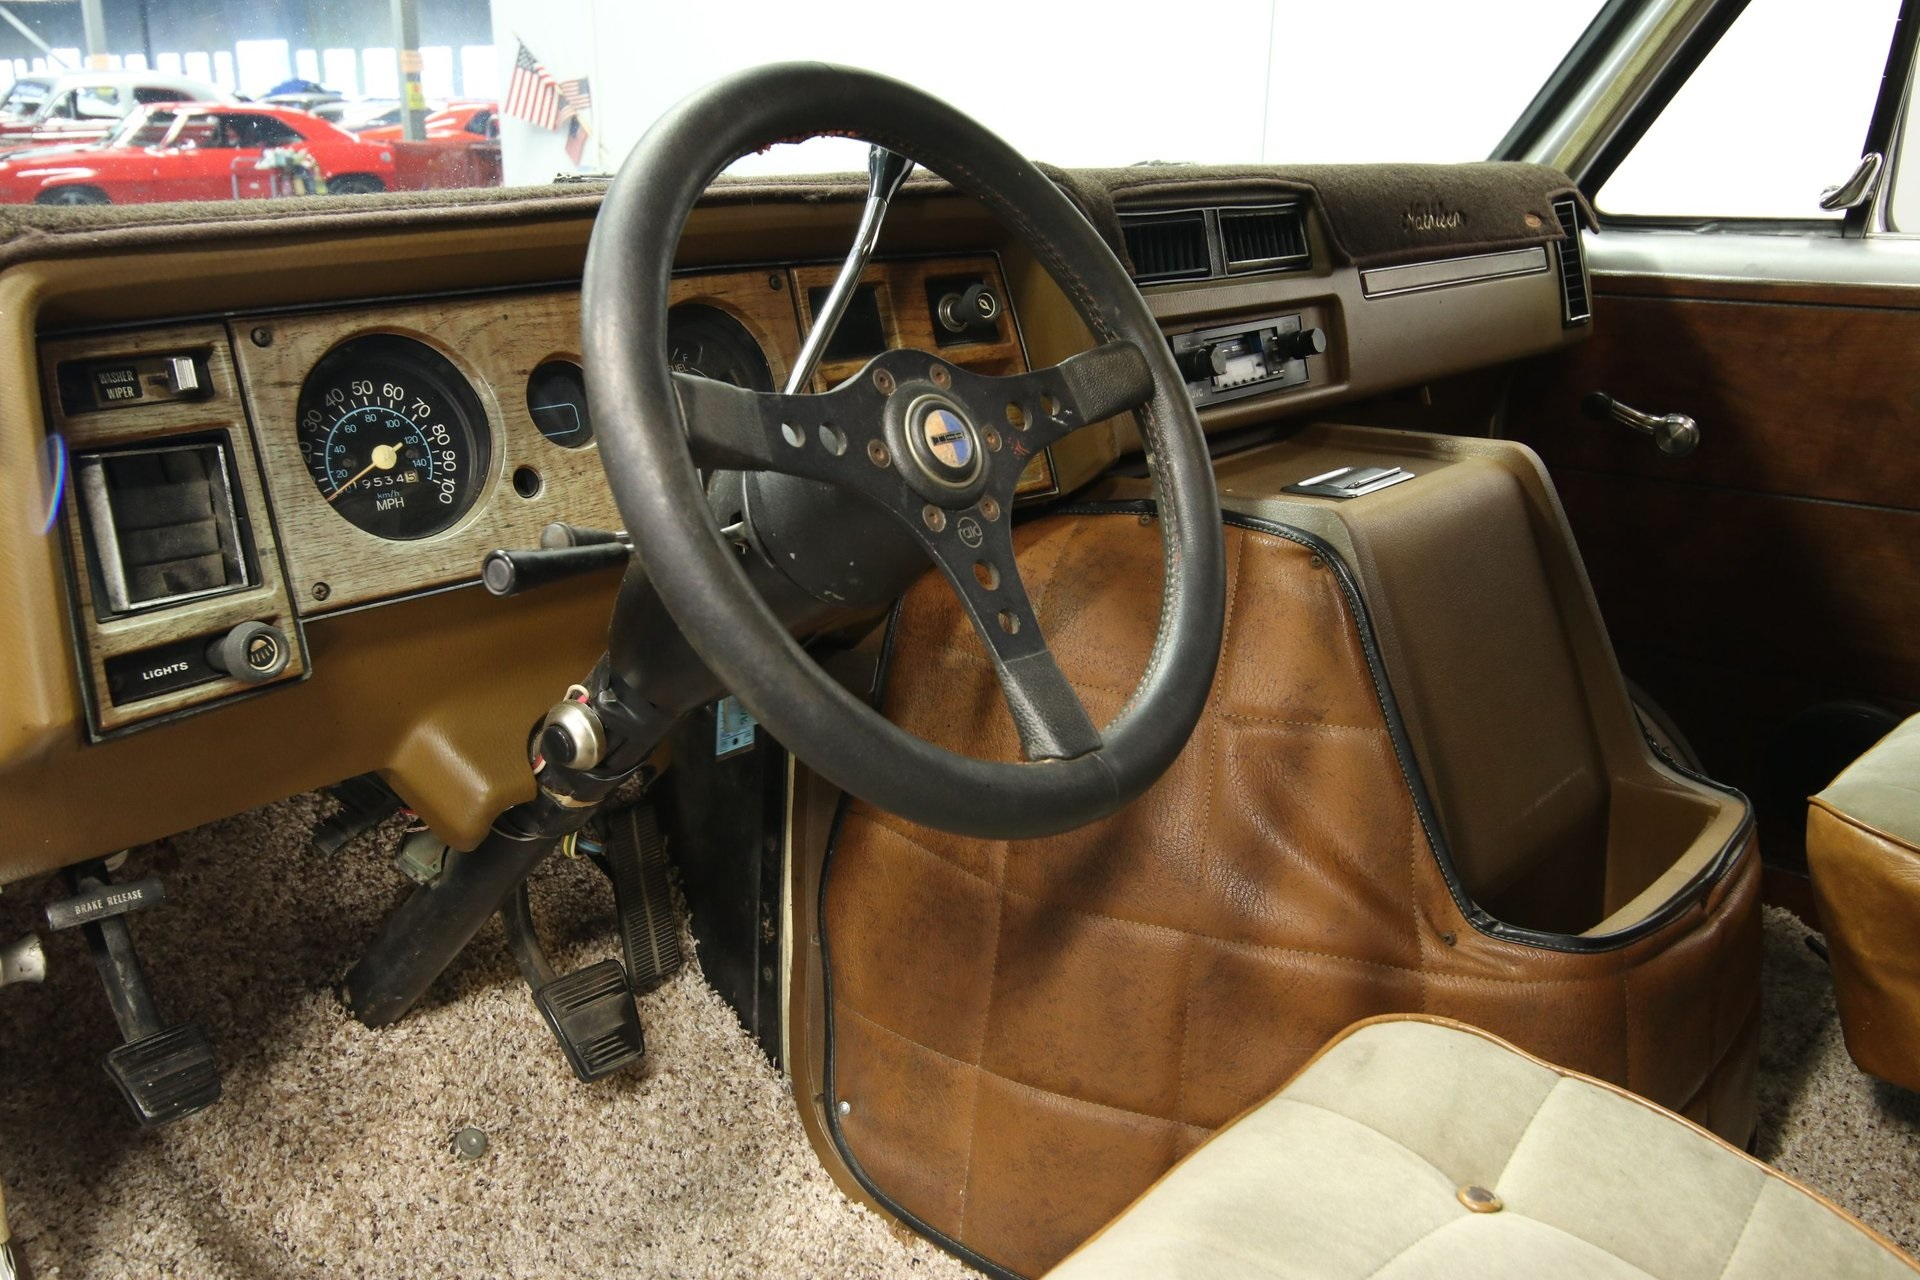 1977-chevrolet-g20-shorty-van-rddj12